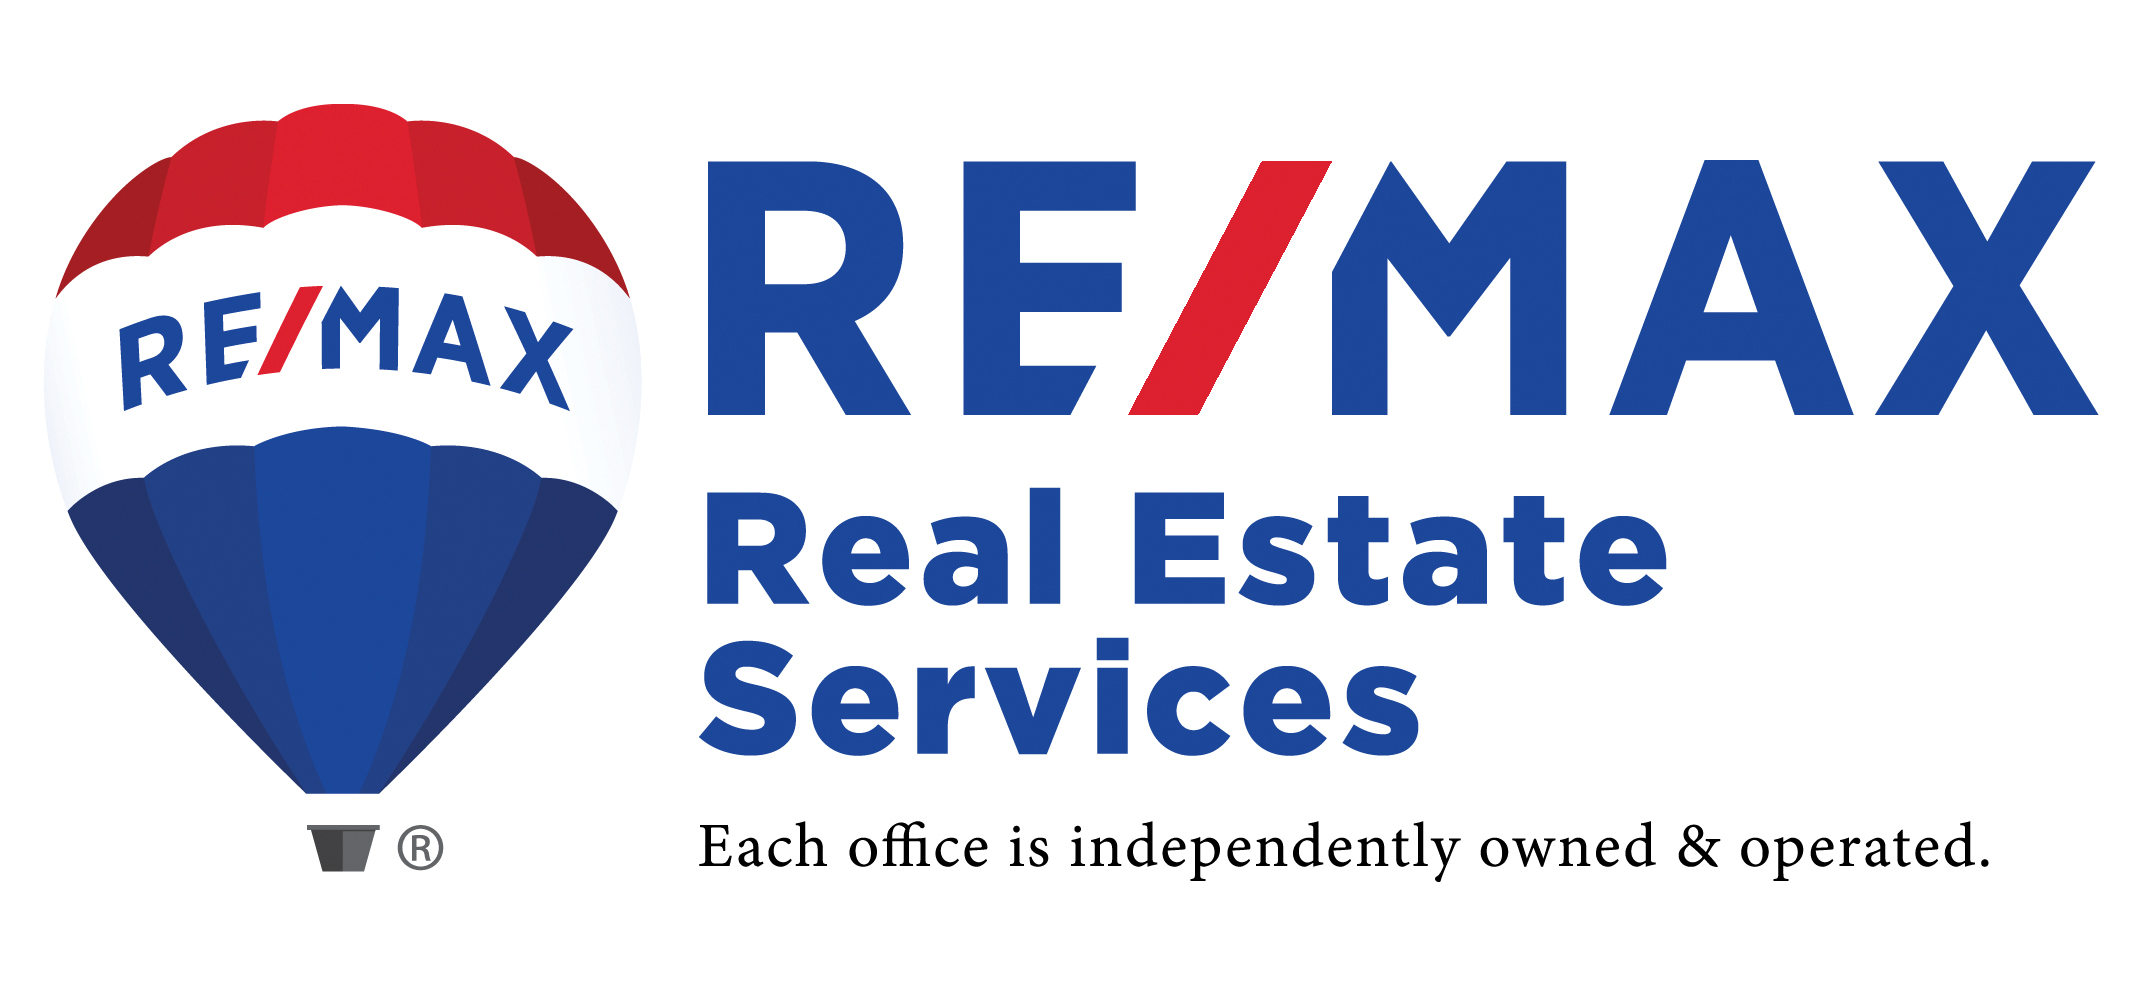 Remax Real Estate Services